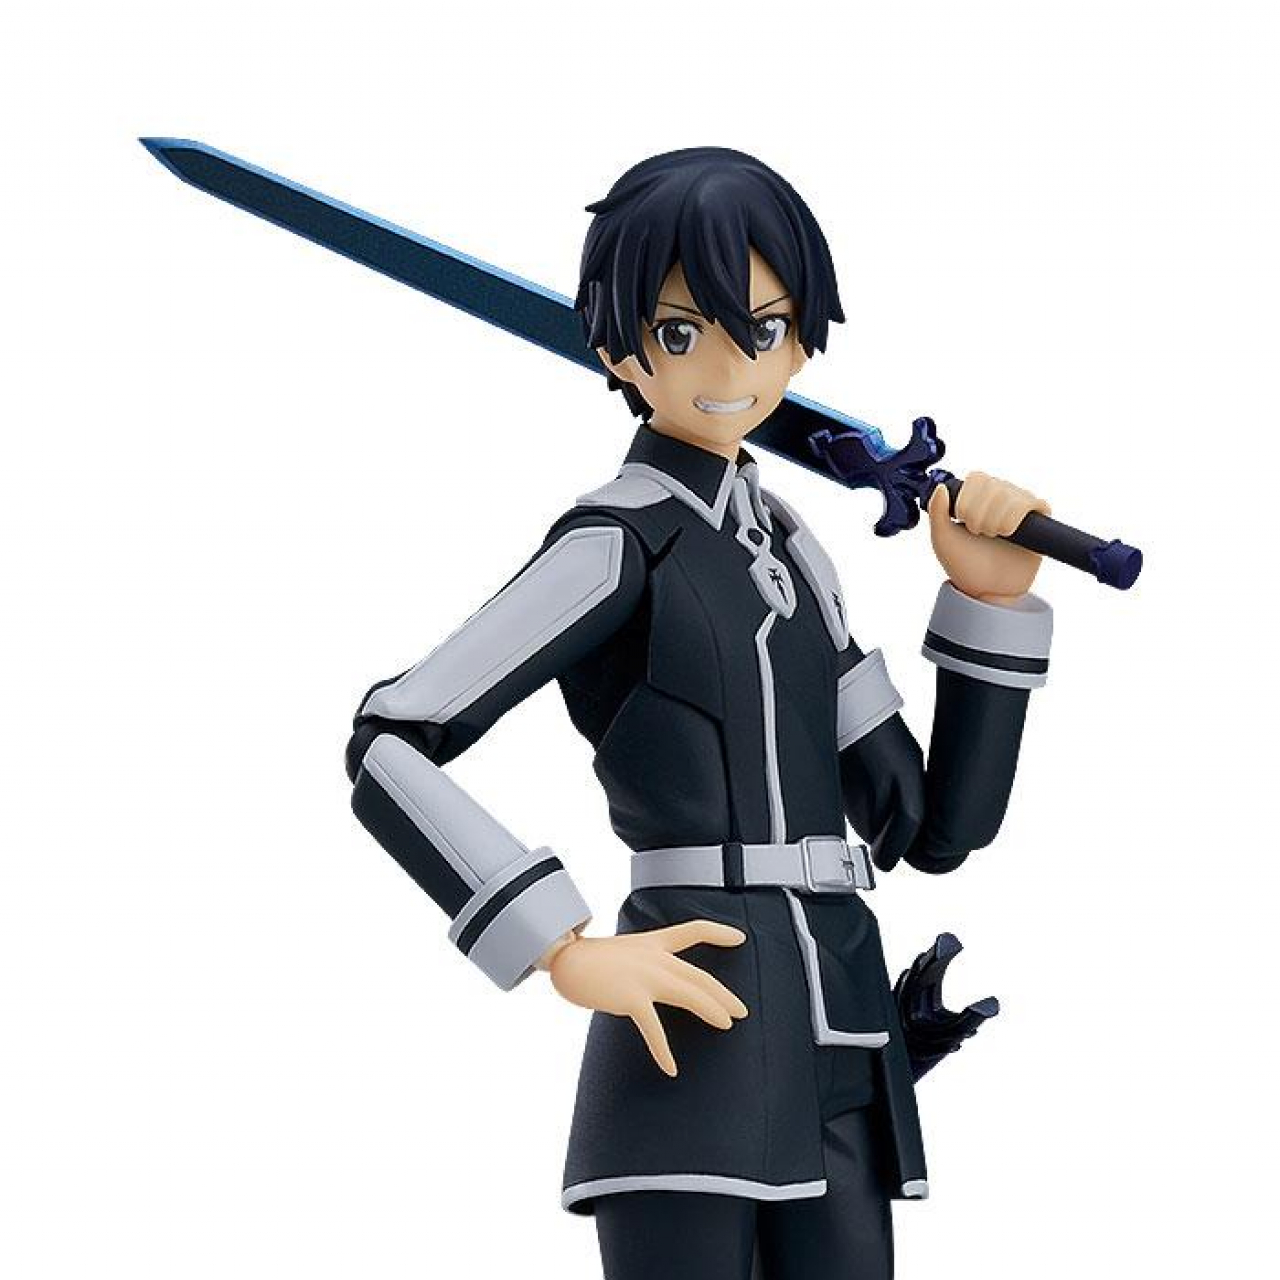 Sword Art Online: Alicization Figma Action Figure Kirito Alicization Ver. 15 cm